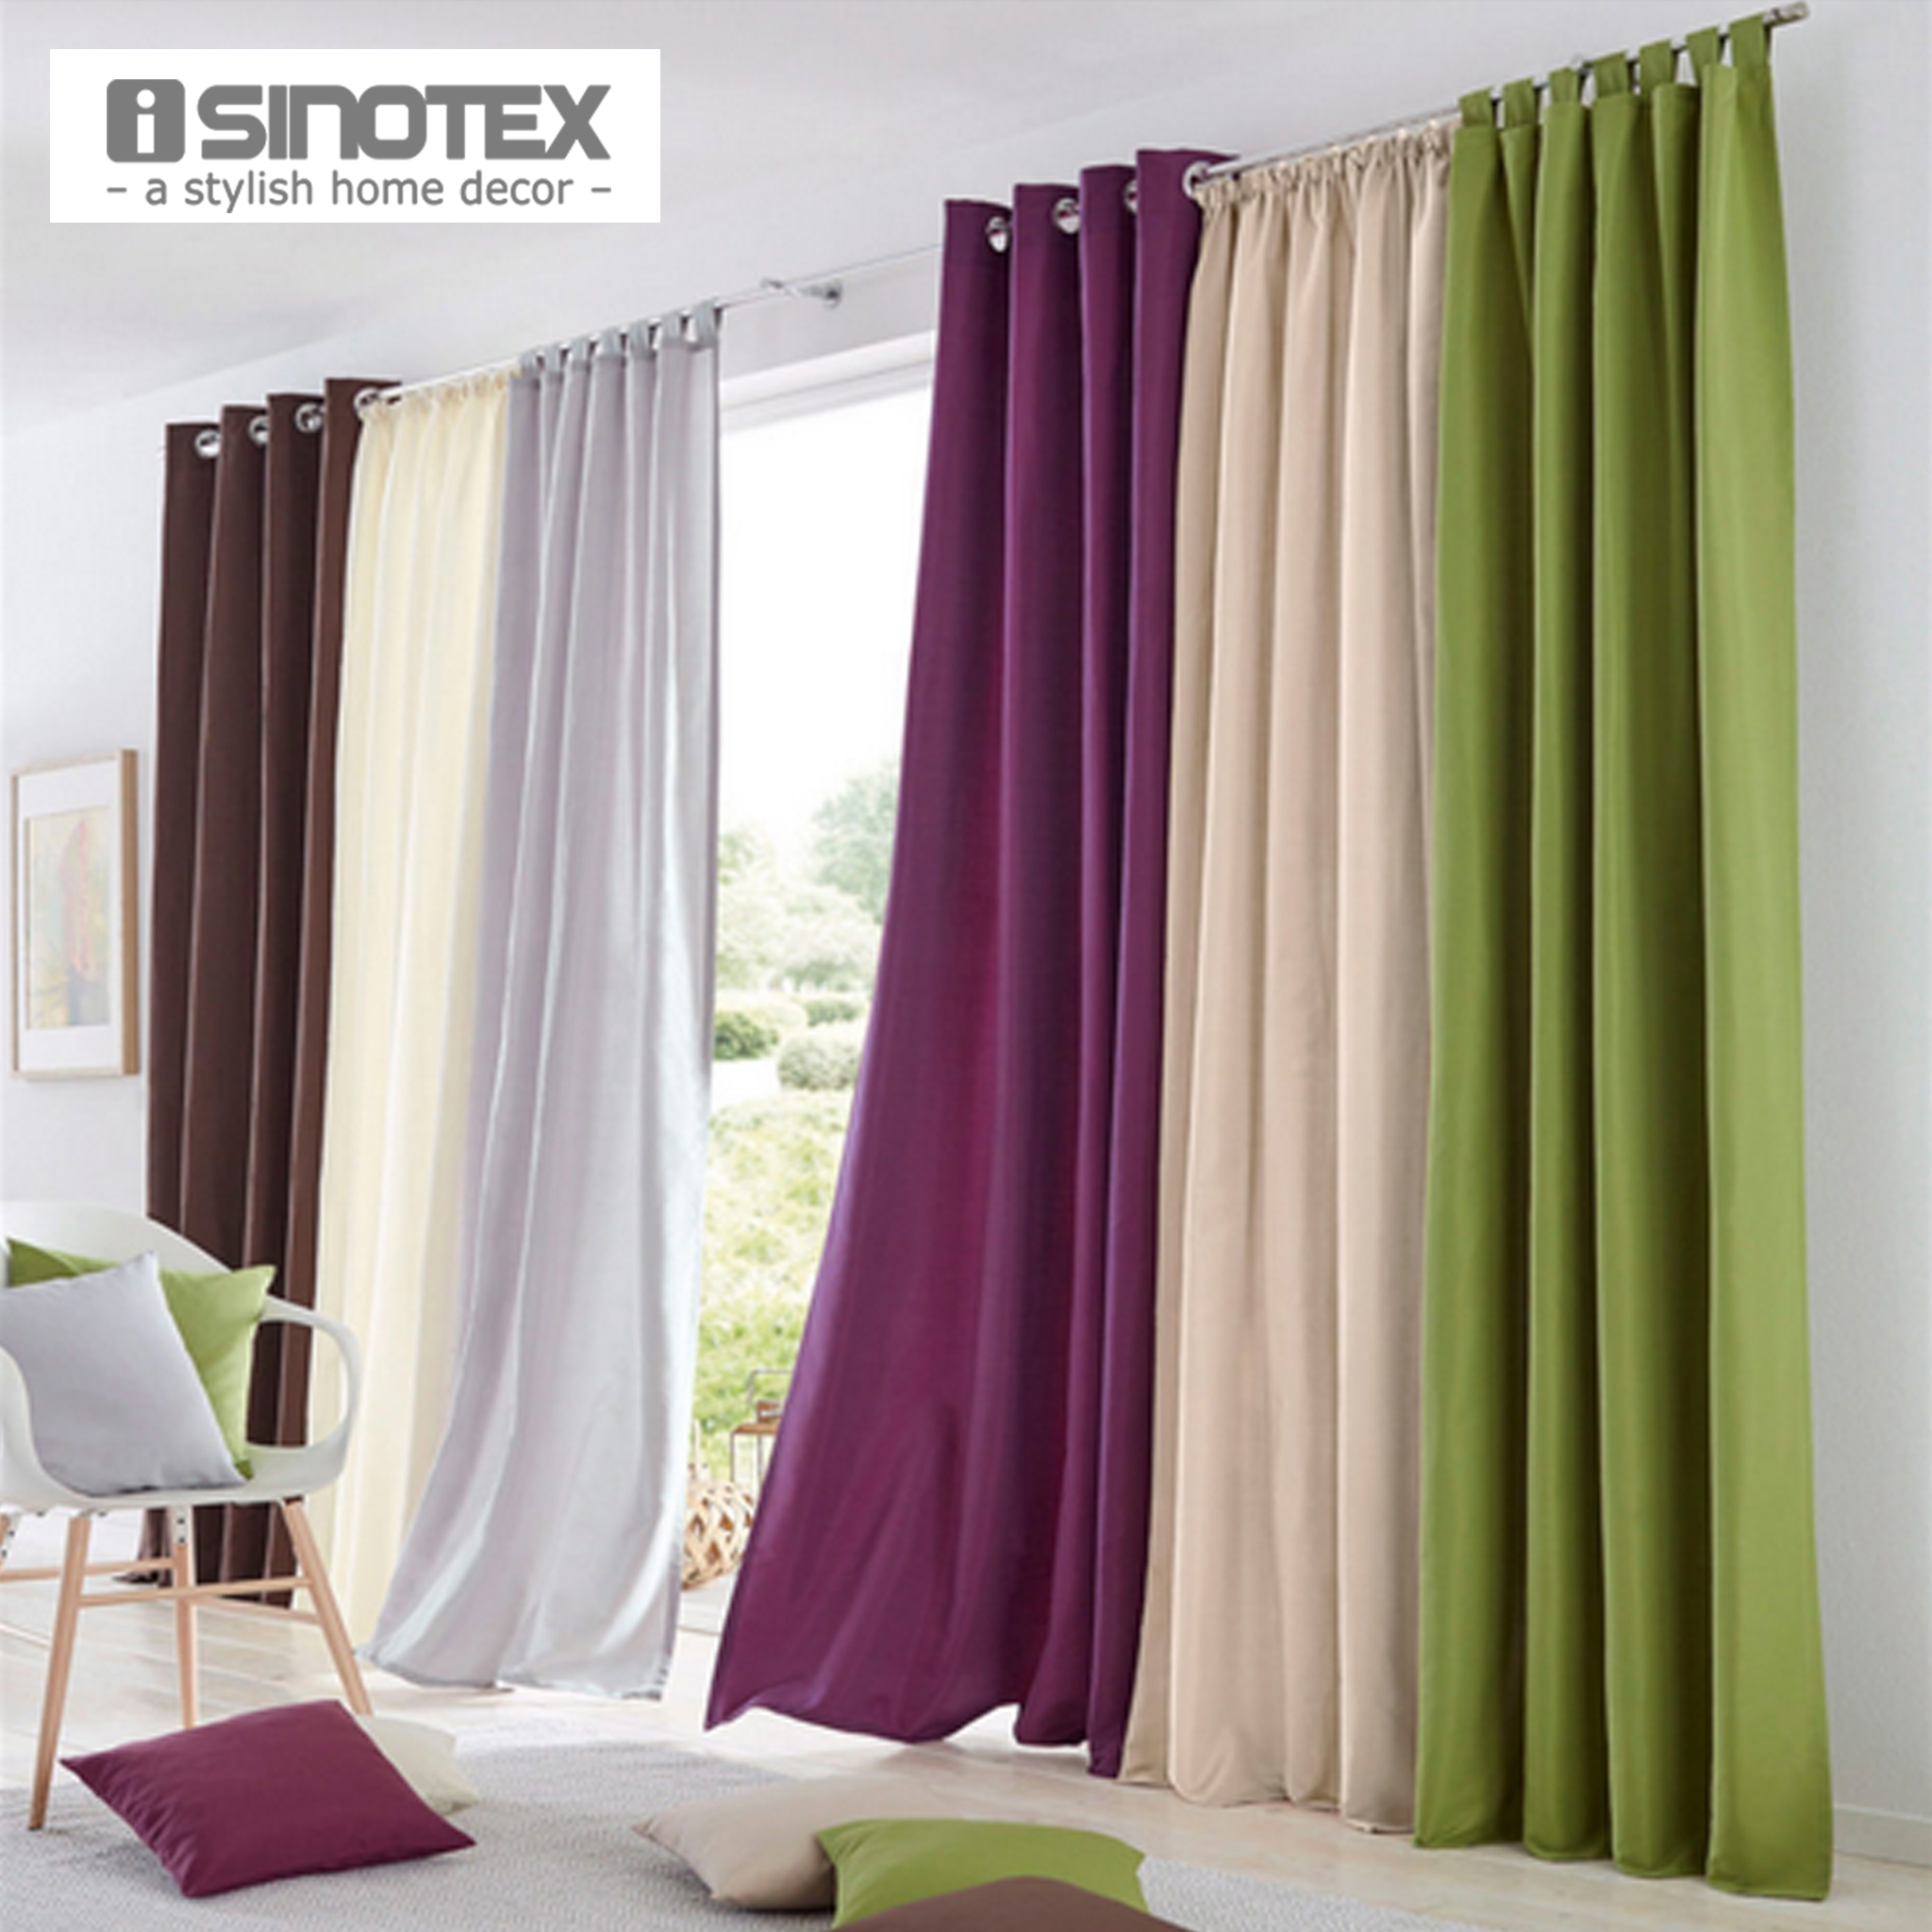 Bedroom Blinds Next Small Bedroom Colour Design Bedroom Sets White Bedroom Remodeling Ideas: Aliexpress.com : Buy 1PCS Solid Colors Blackout Blinds